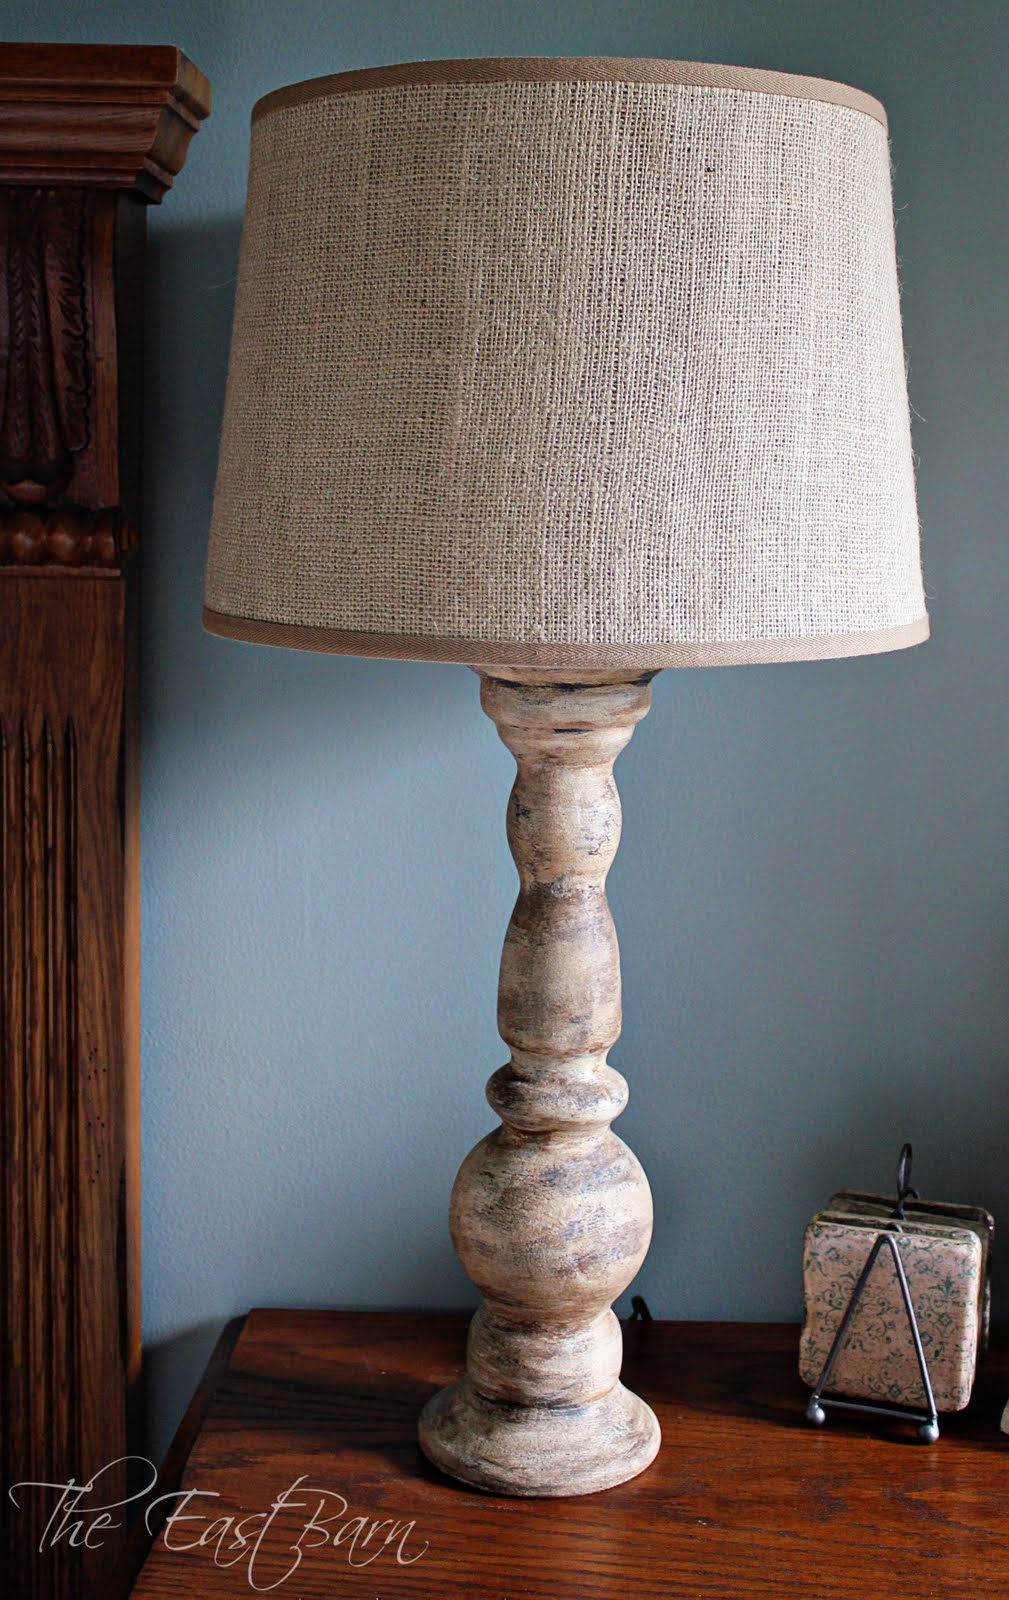 Burlap Lamp Shades : The east barn in different light